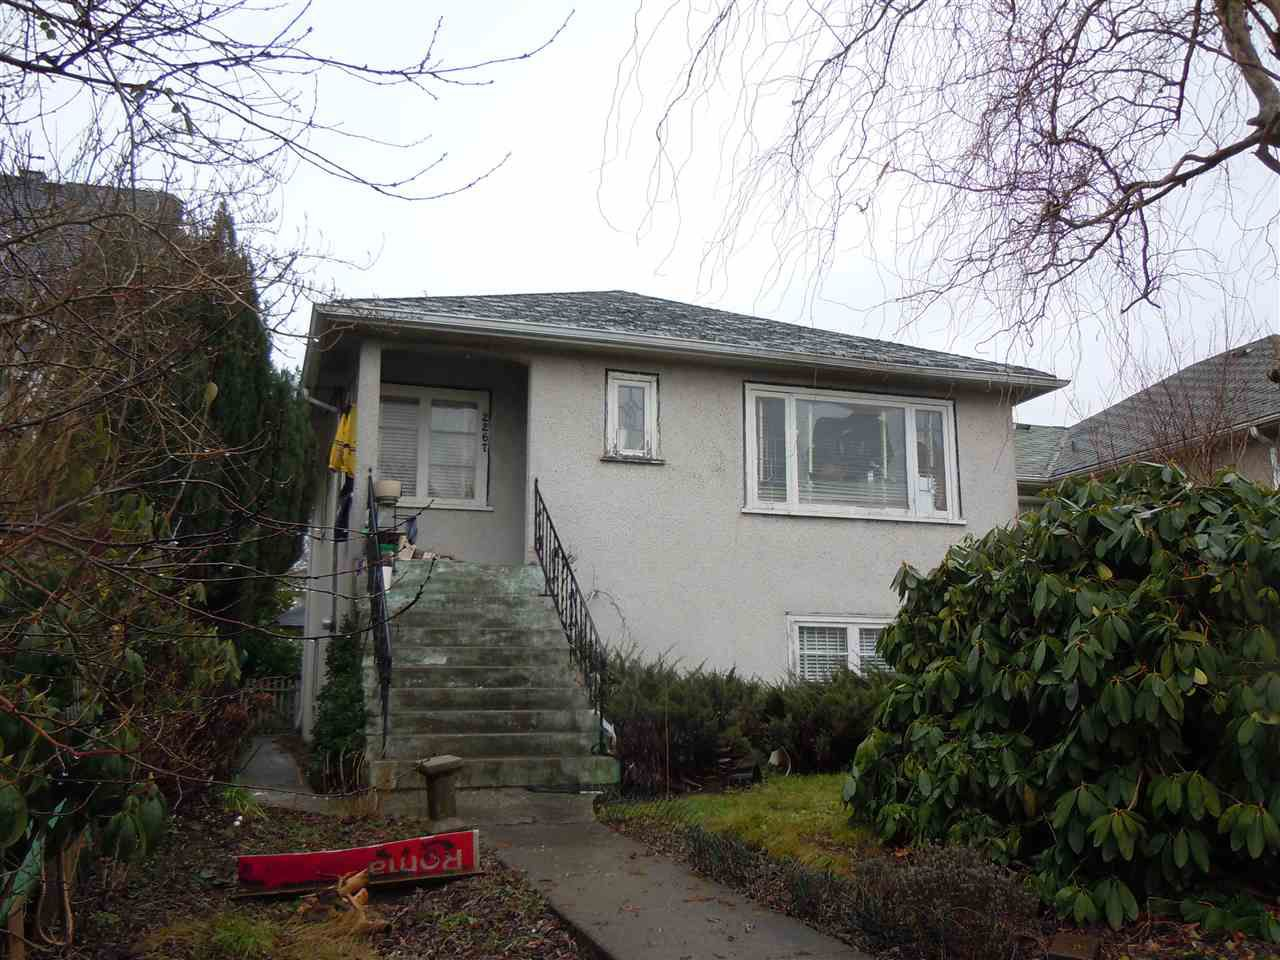 Main Photo: 2267 E BROADWAY in Vancouver: Grandview VE House for sale (Vancouver East)  : MLS®# R2023615